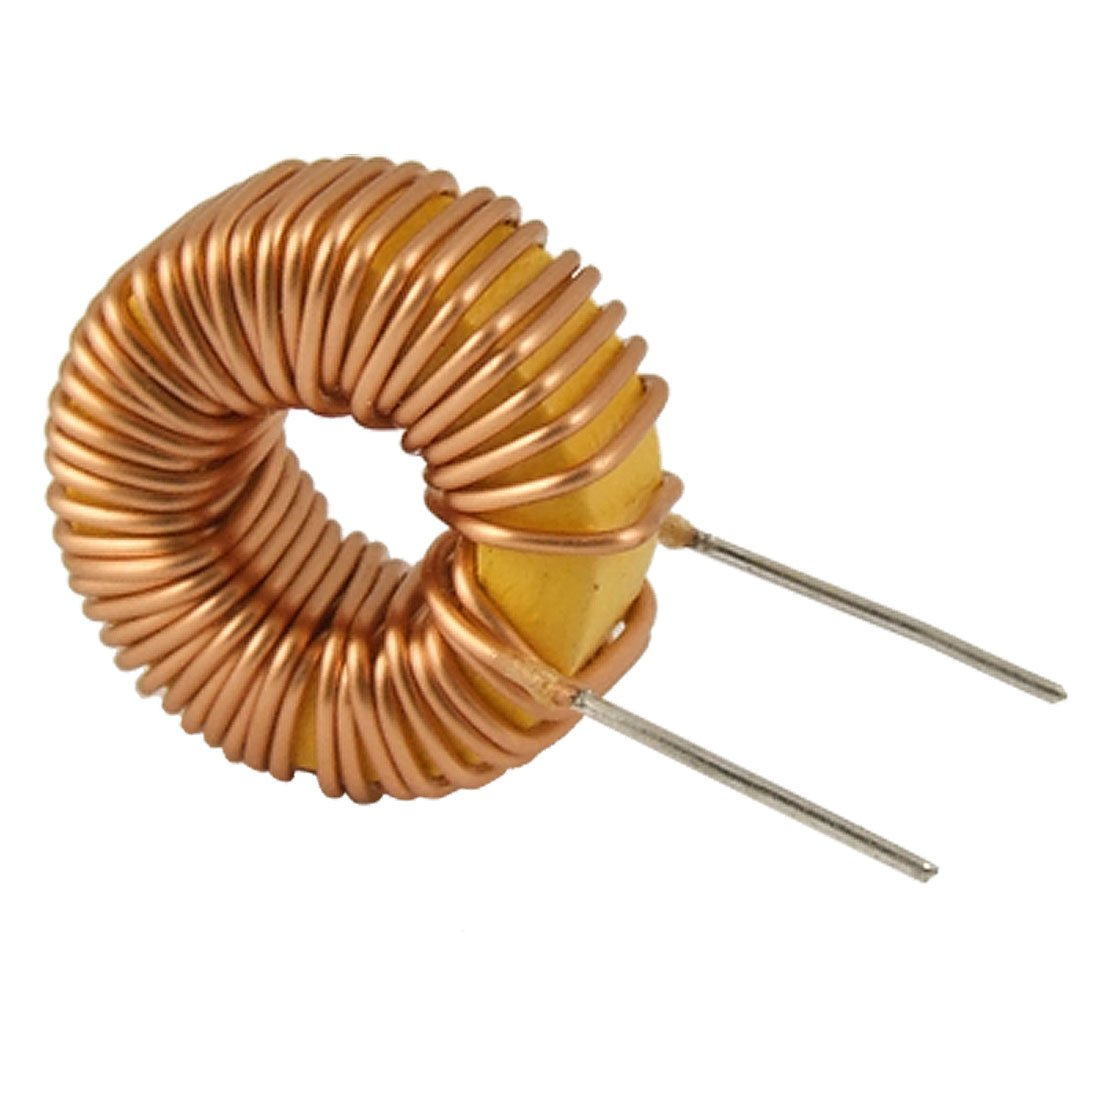 uxcell 100 uH 14.5mm x 6mm DIP Ring Winding Inductors 10 Pcs